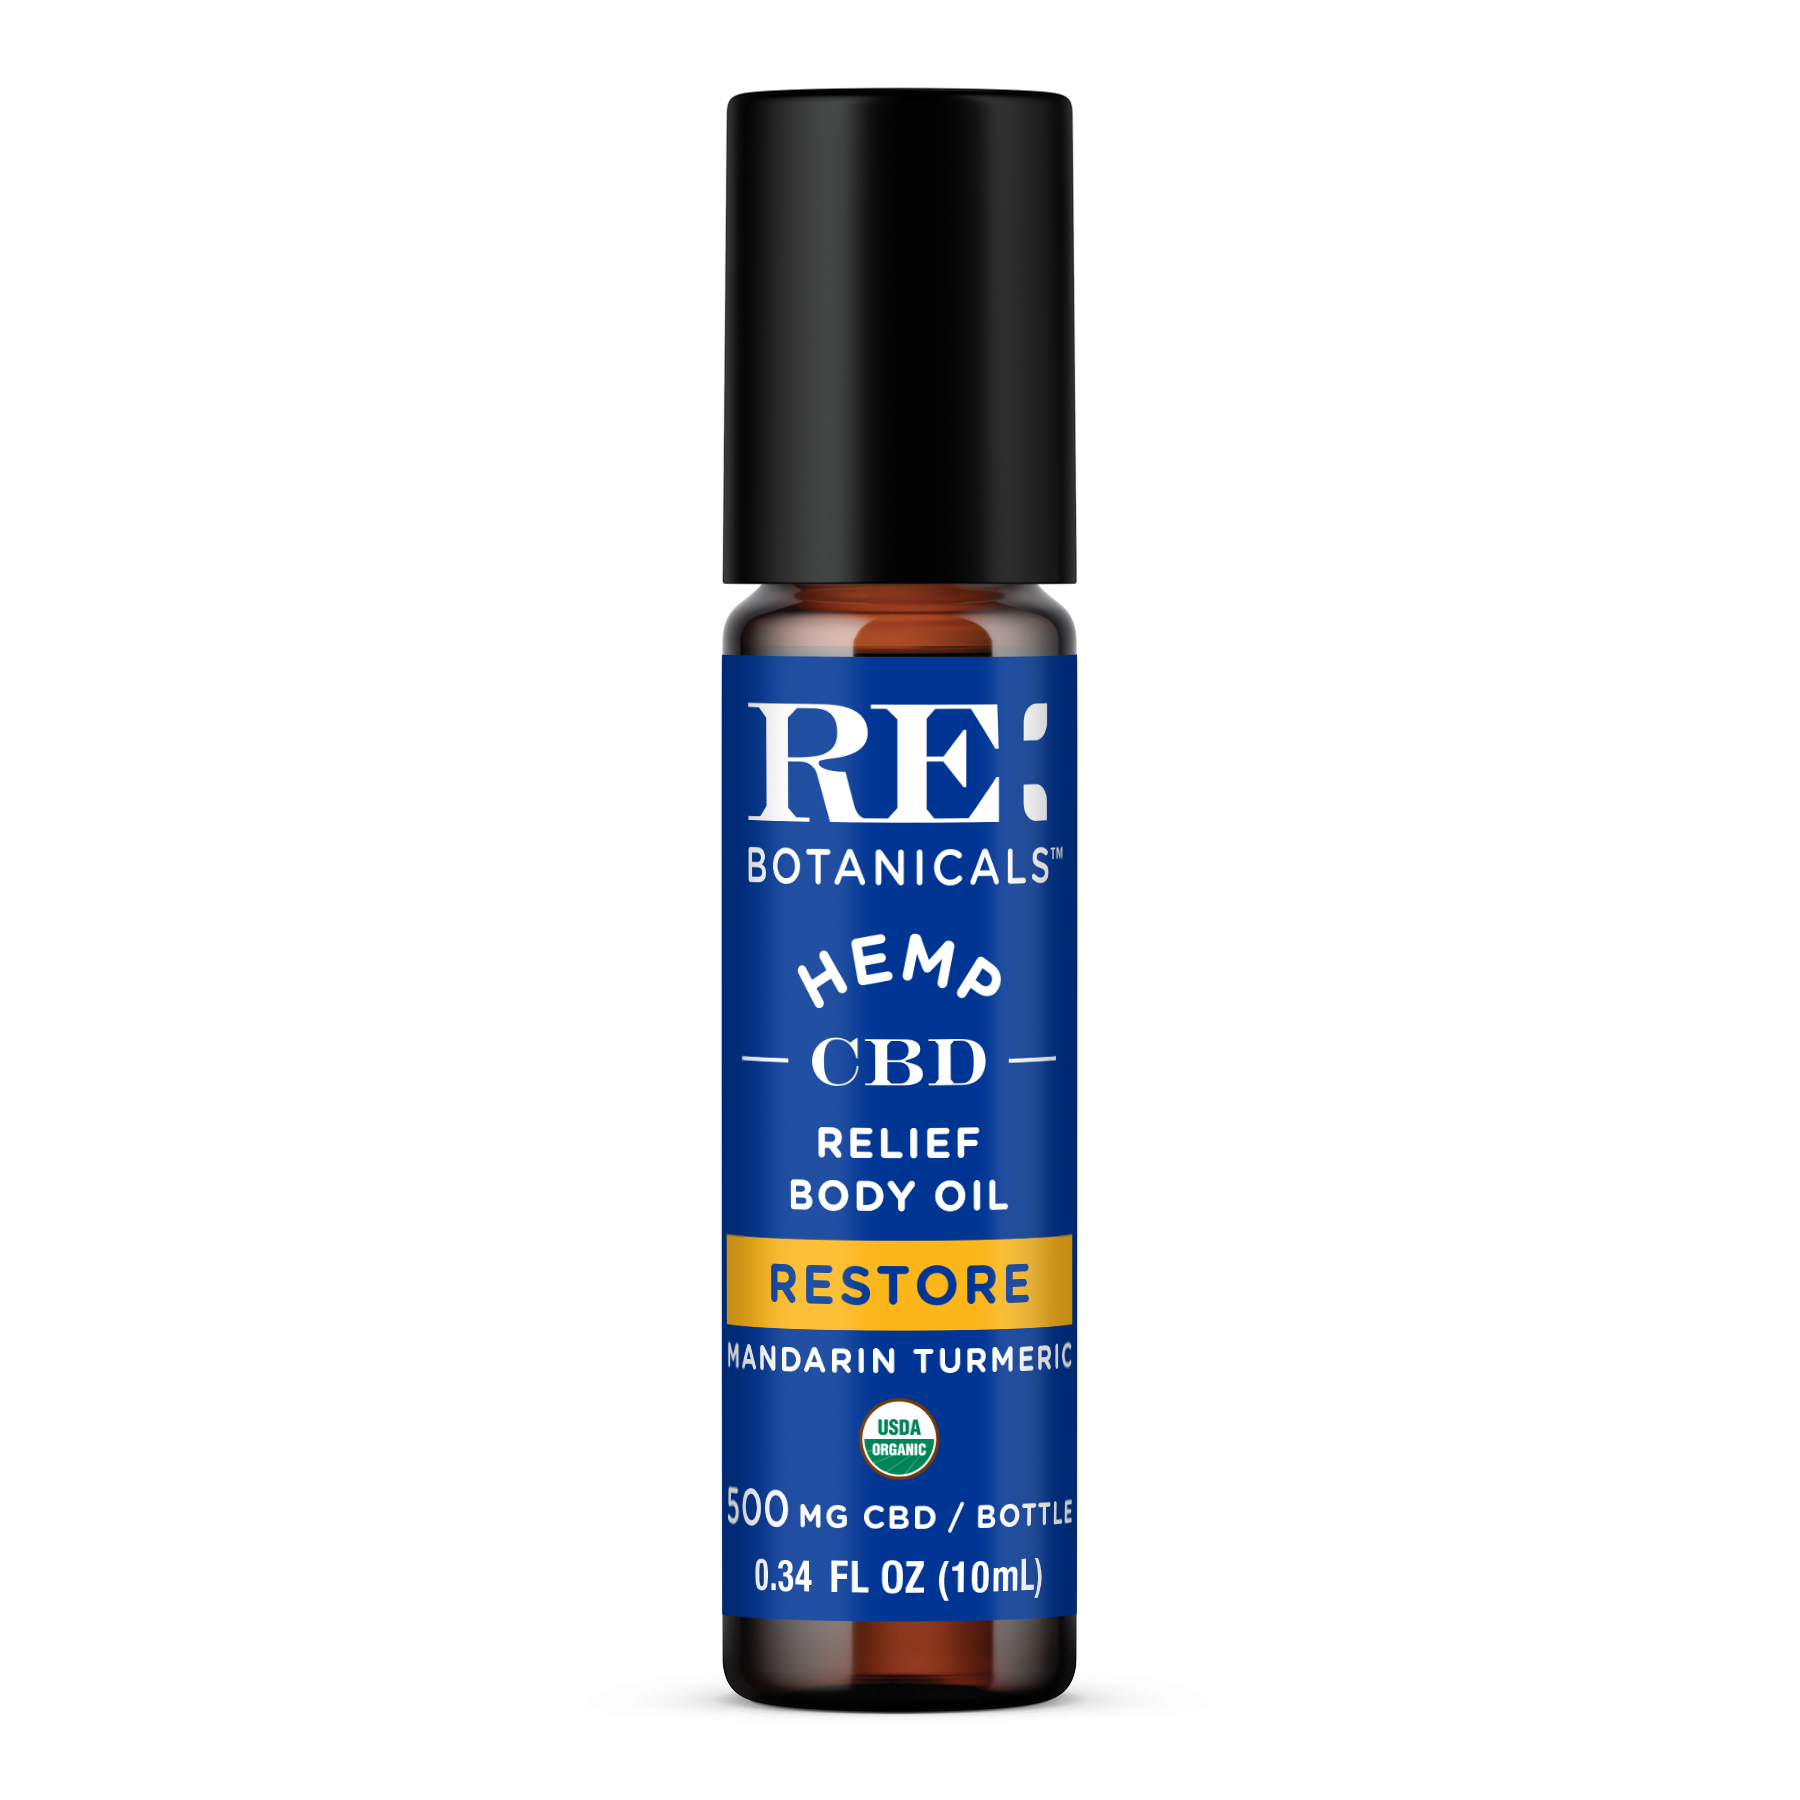 RE Botanicals: Mandarin Turmeric - Restore Relief Body Oil (500mg)